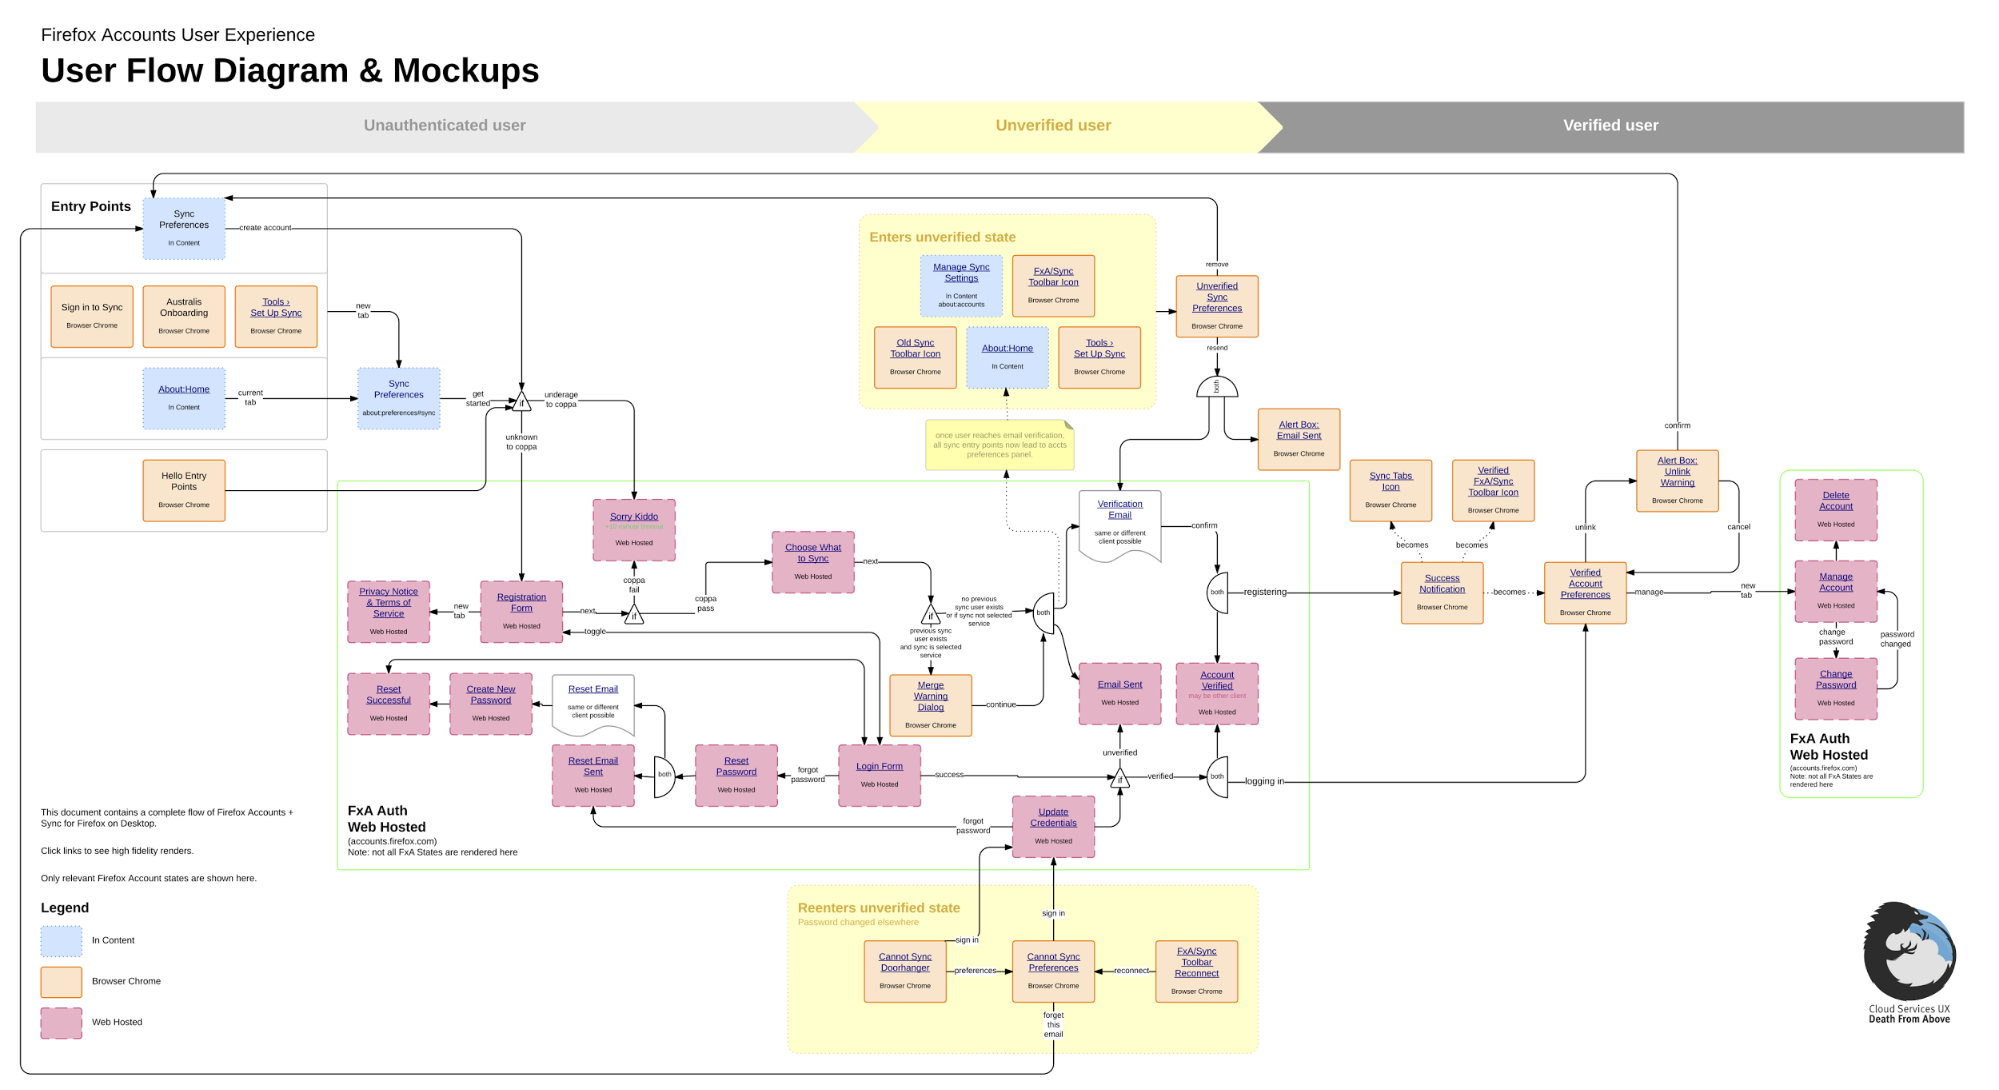 User flow diagram library of wiring diagram mozilla s user flow diagram with graphics in dropbox fantastic rh pinterest com user flow diagram ccuart Gallery